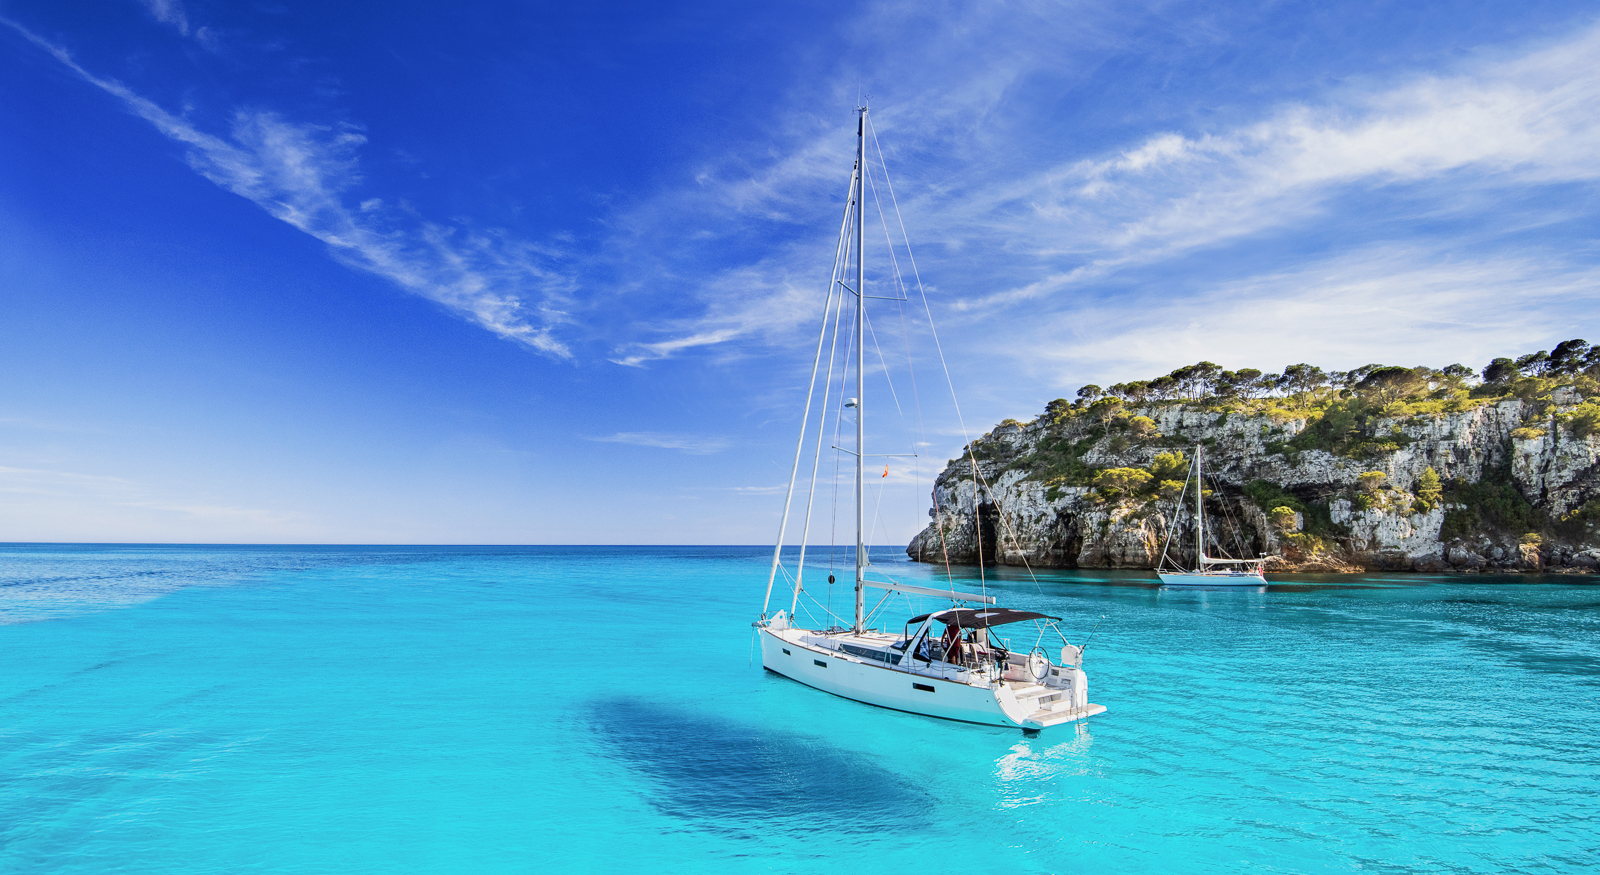 Living In A Sailboat: An Insider's Guide To Sailboat Life